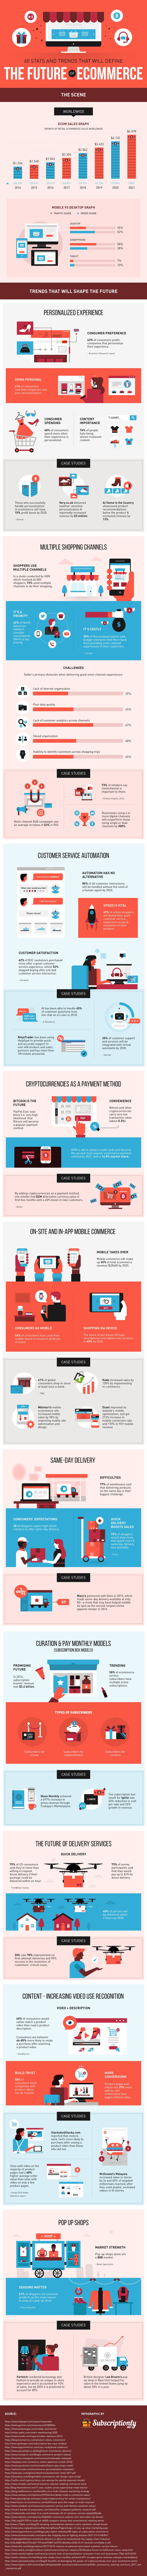 future-of-ecommerce-infographic1